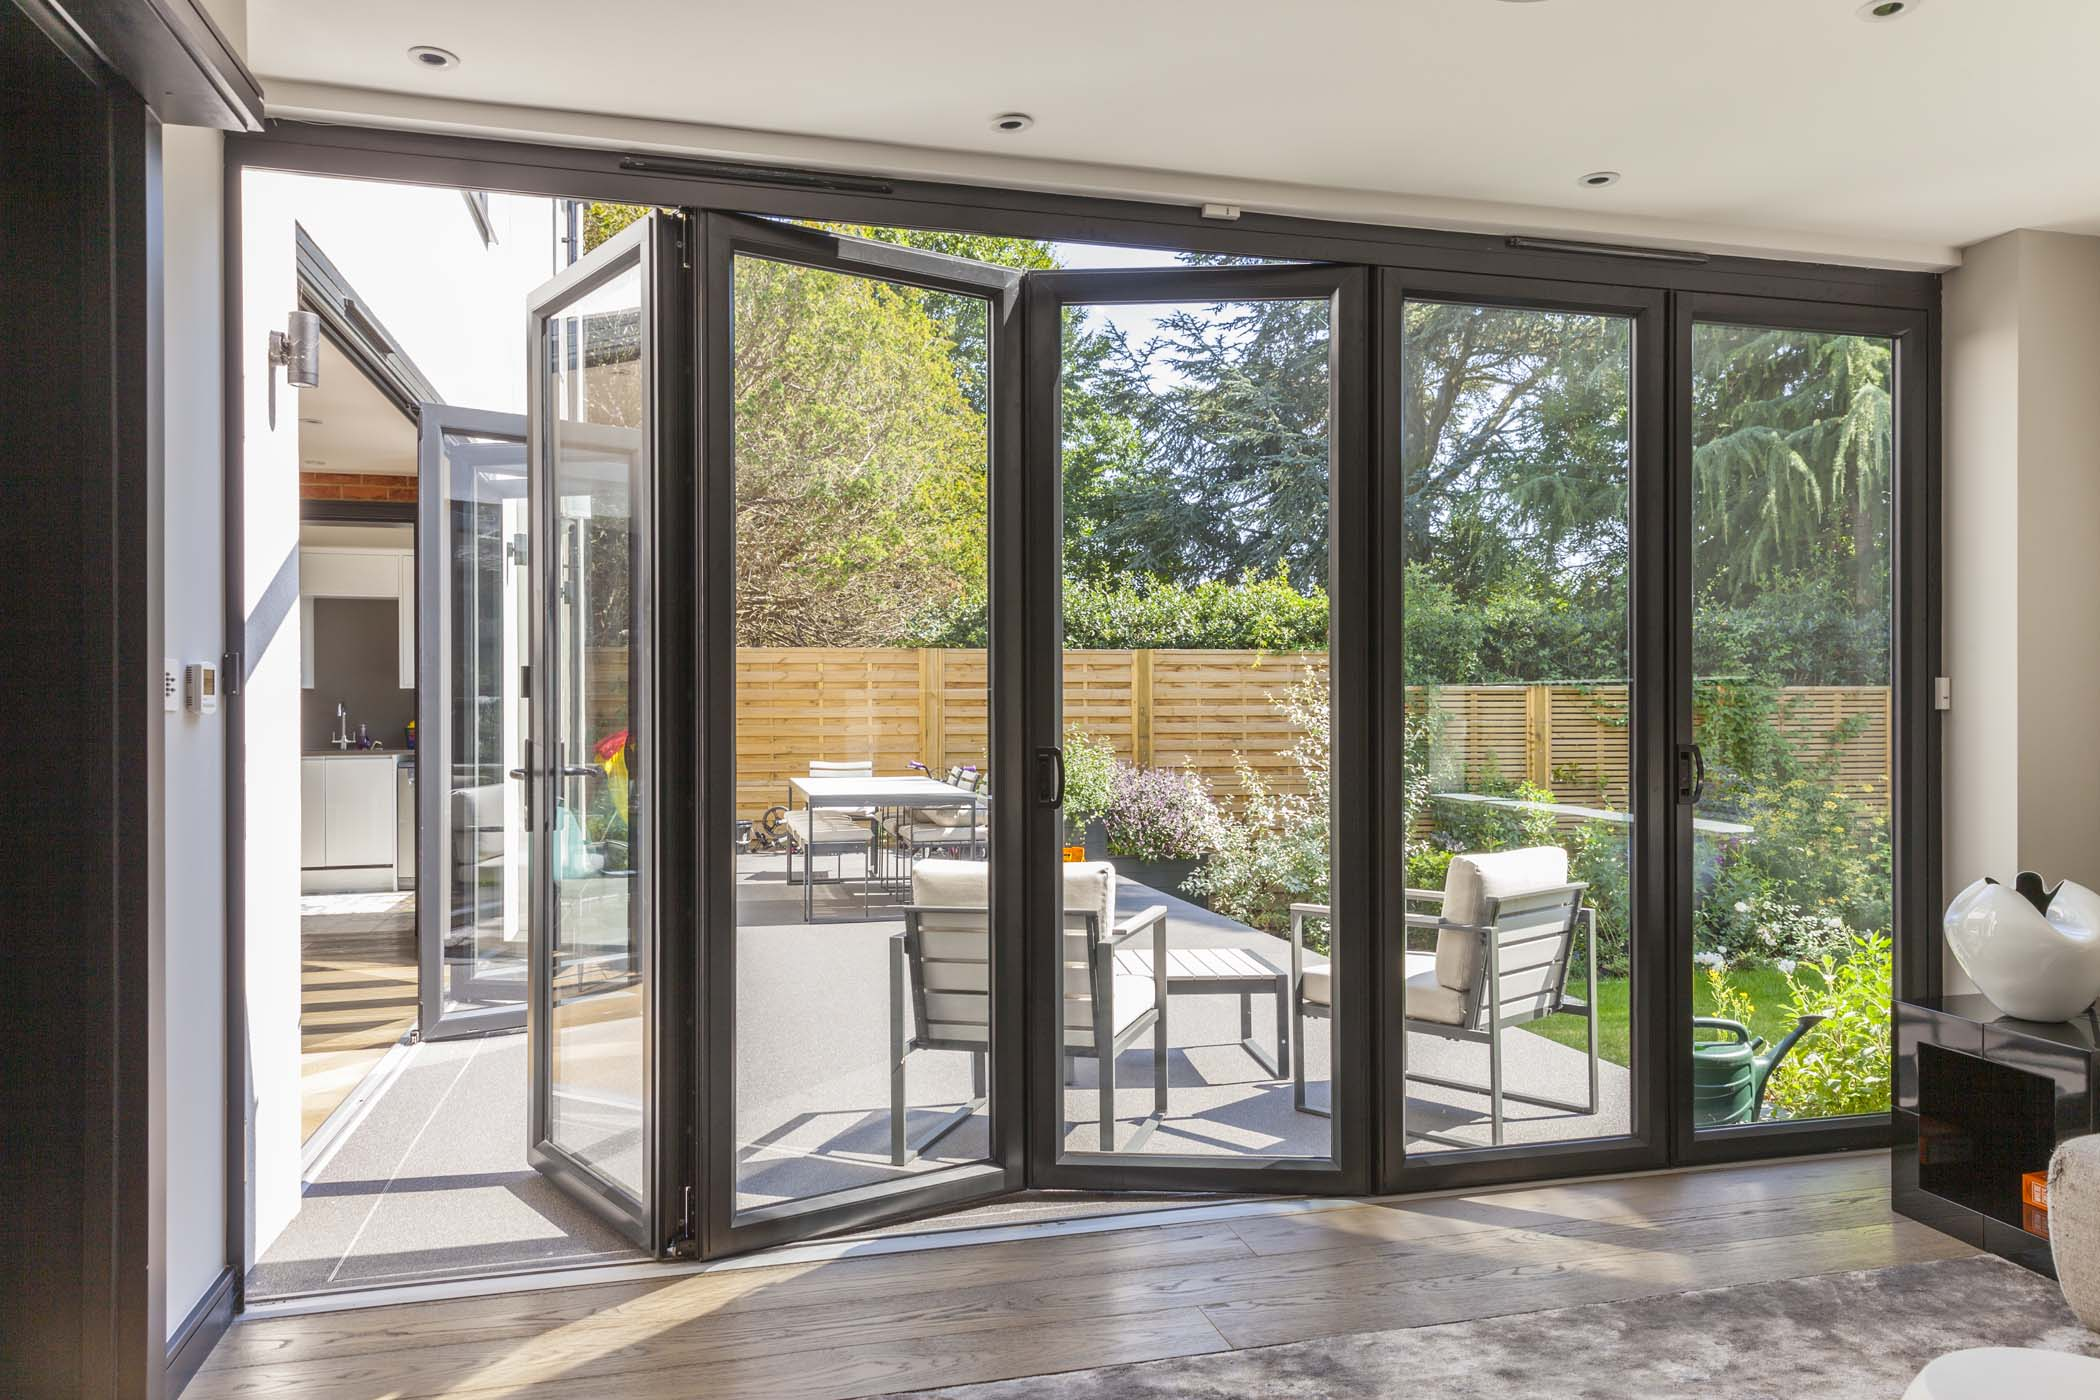 Crown Sliding Folding & Sliding Folding Aluminium Doors - Sliding Door Designs